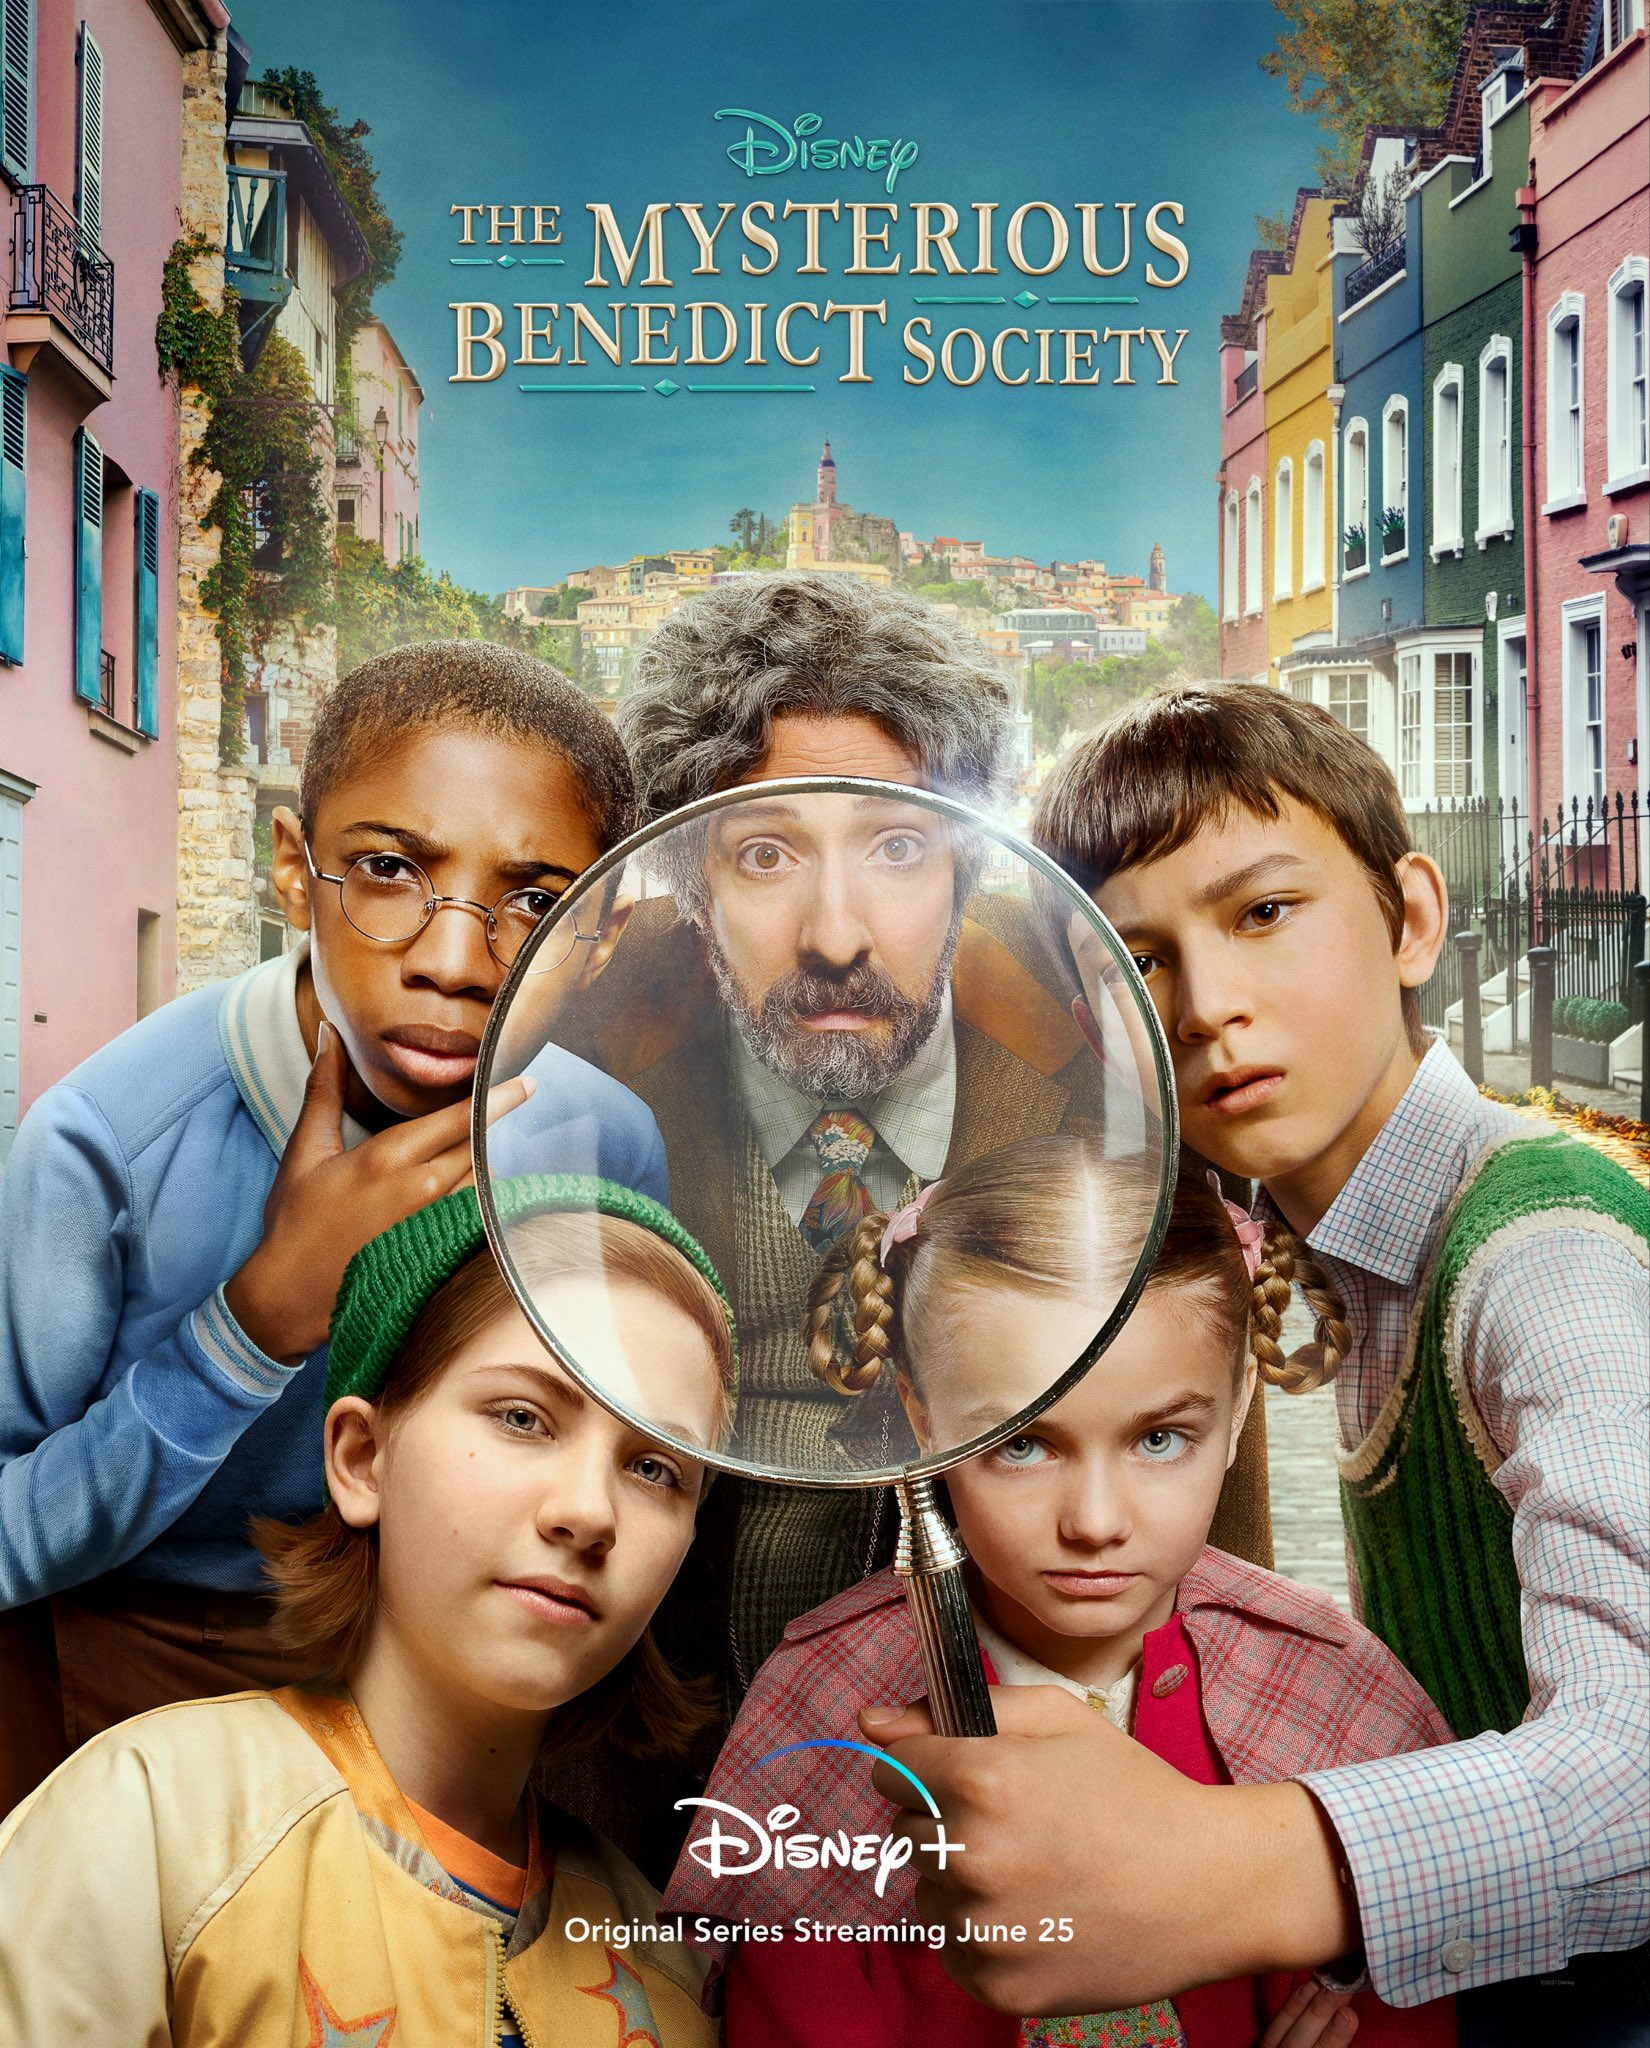 Le Mystérieux Cercle Benedict [20th Television/Disney - 2021] E11ibh2VcAAXzWc?format=jpg&name=large